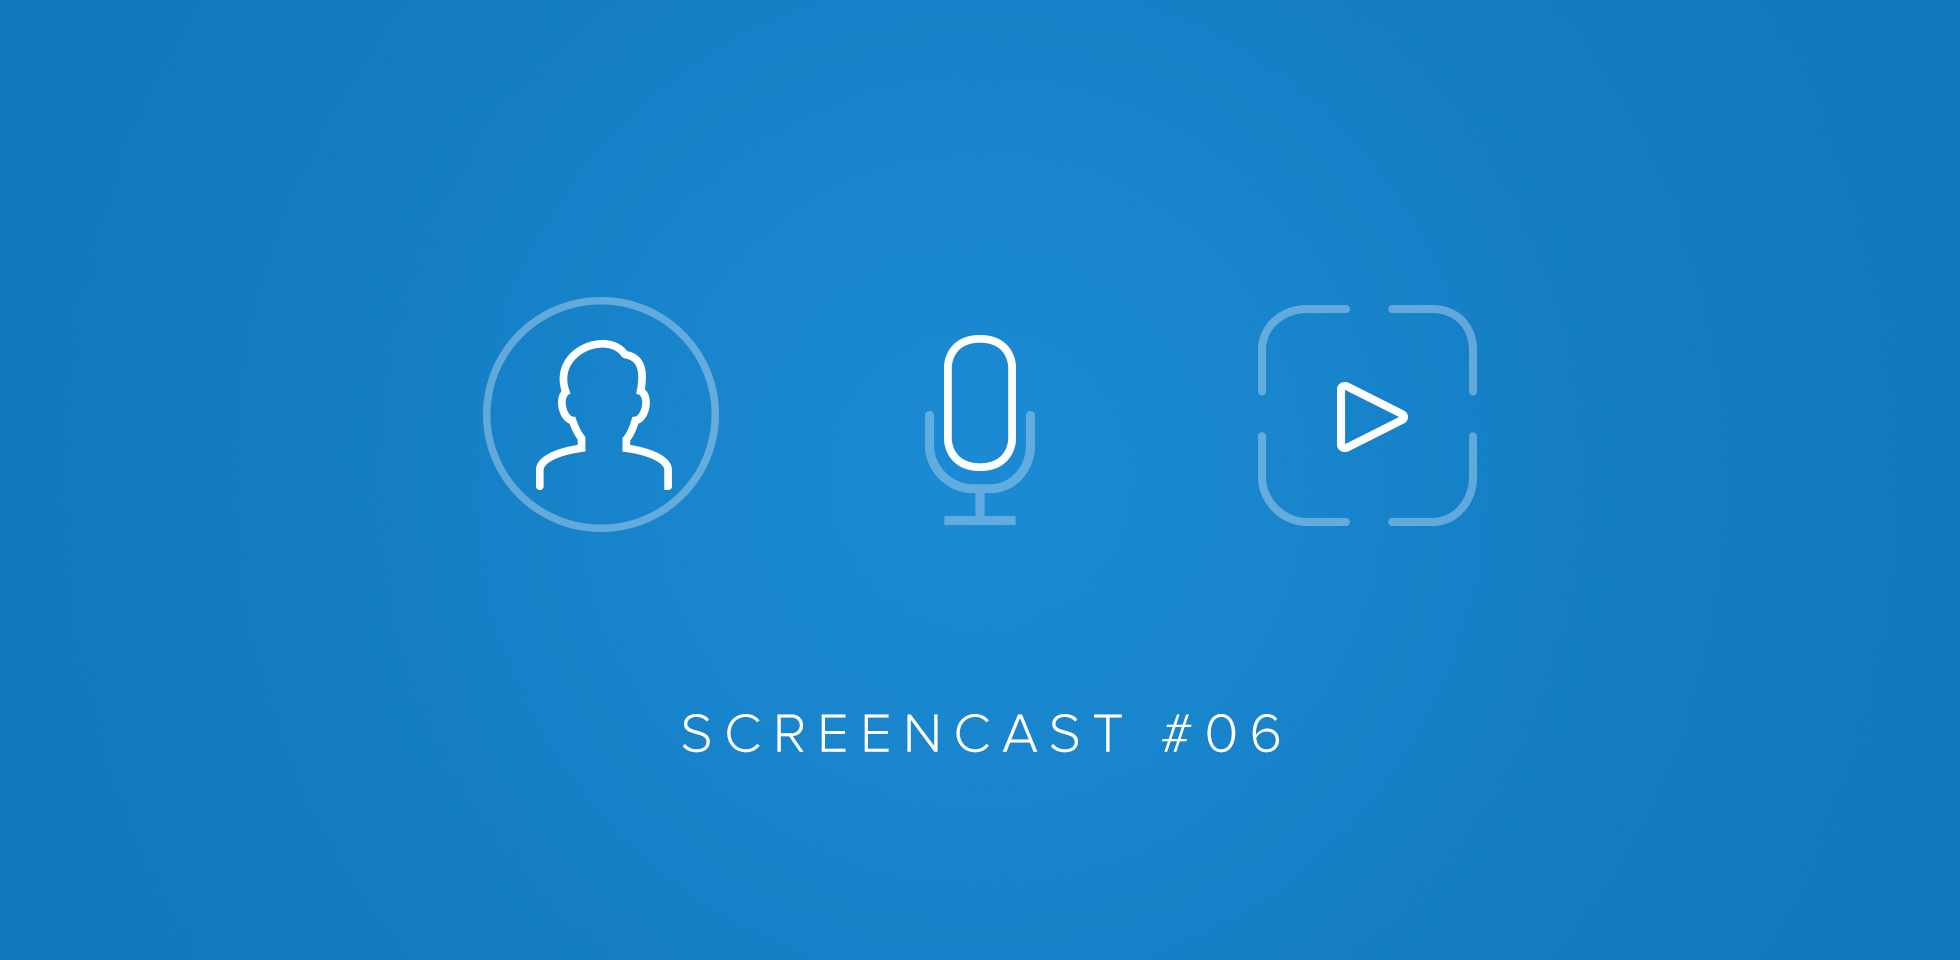 Screencast #06 - Users and Permissions